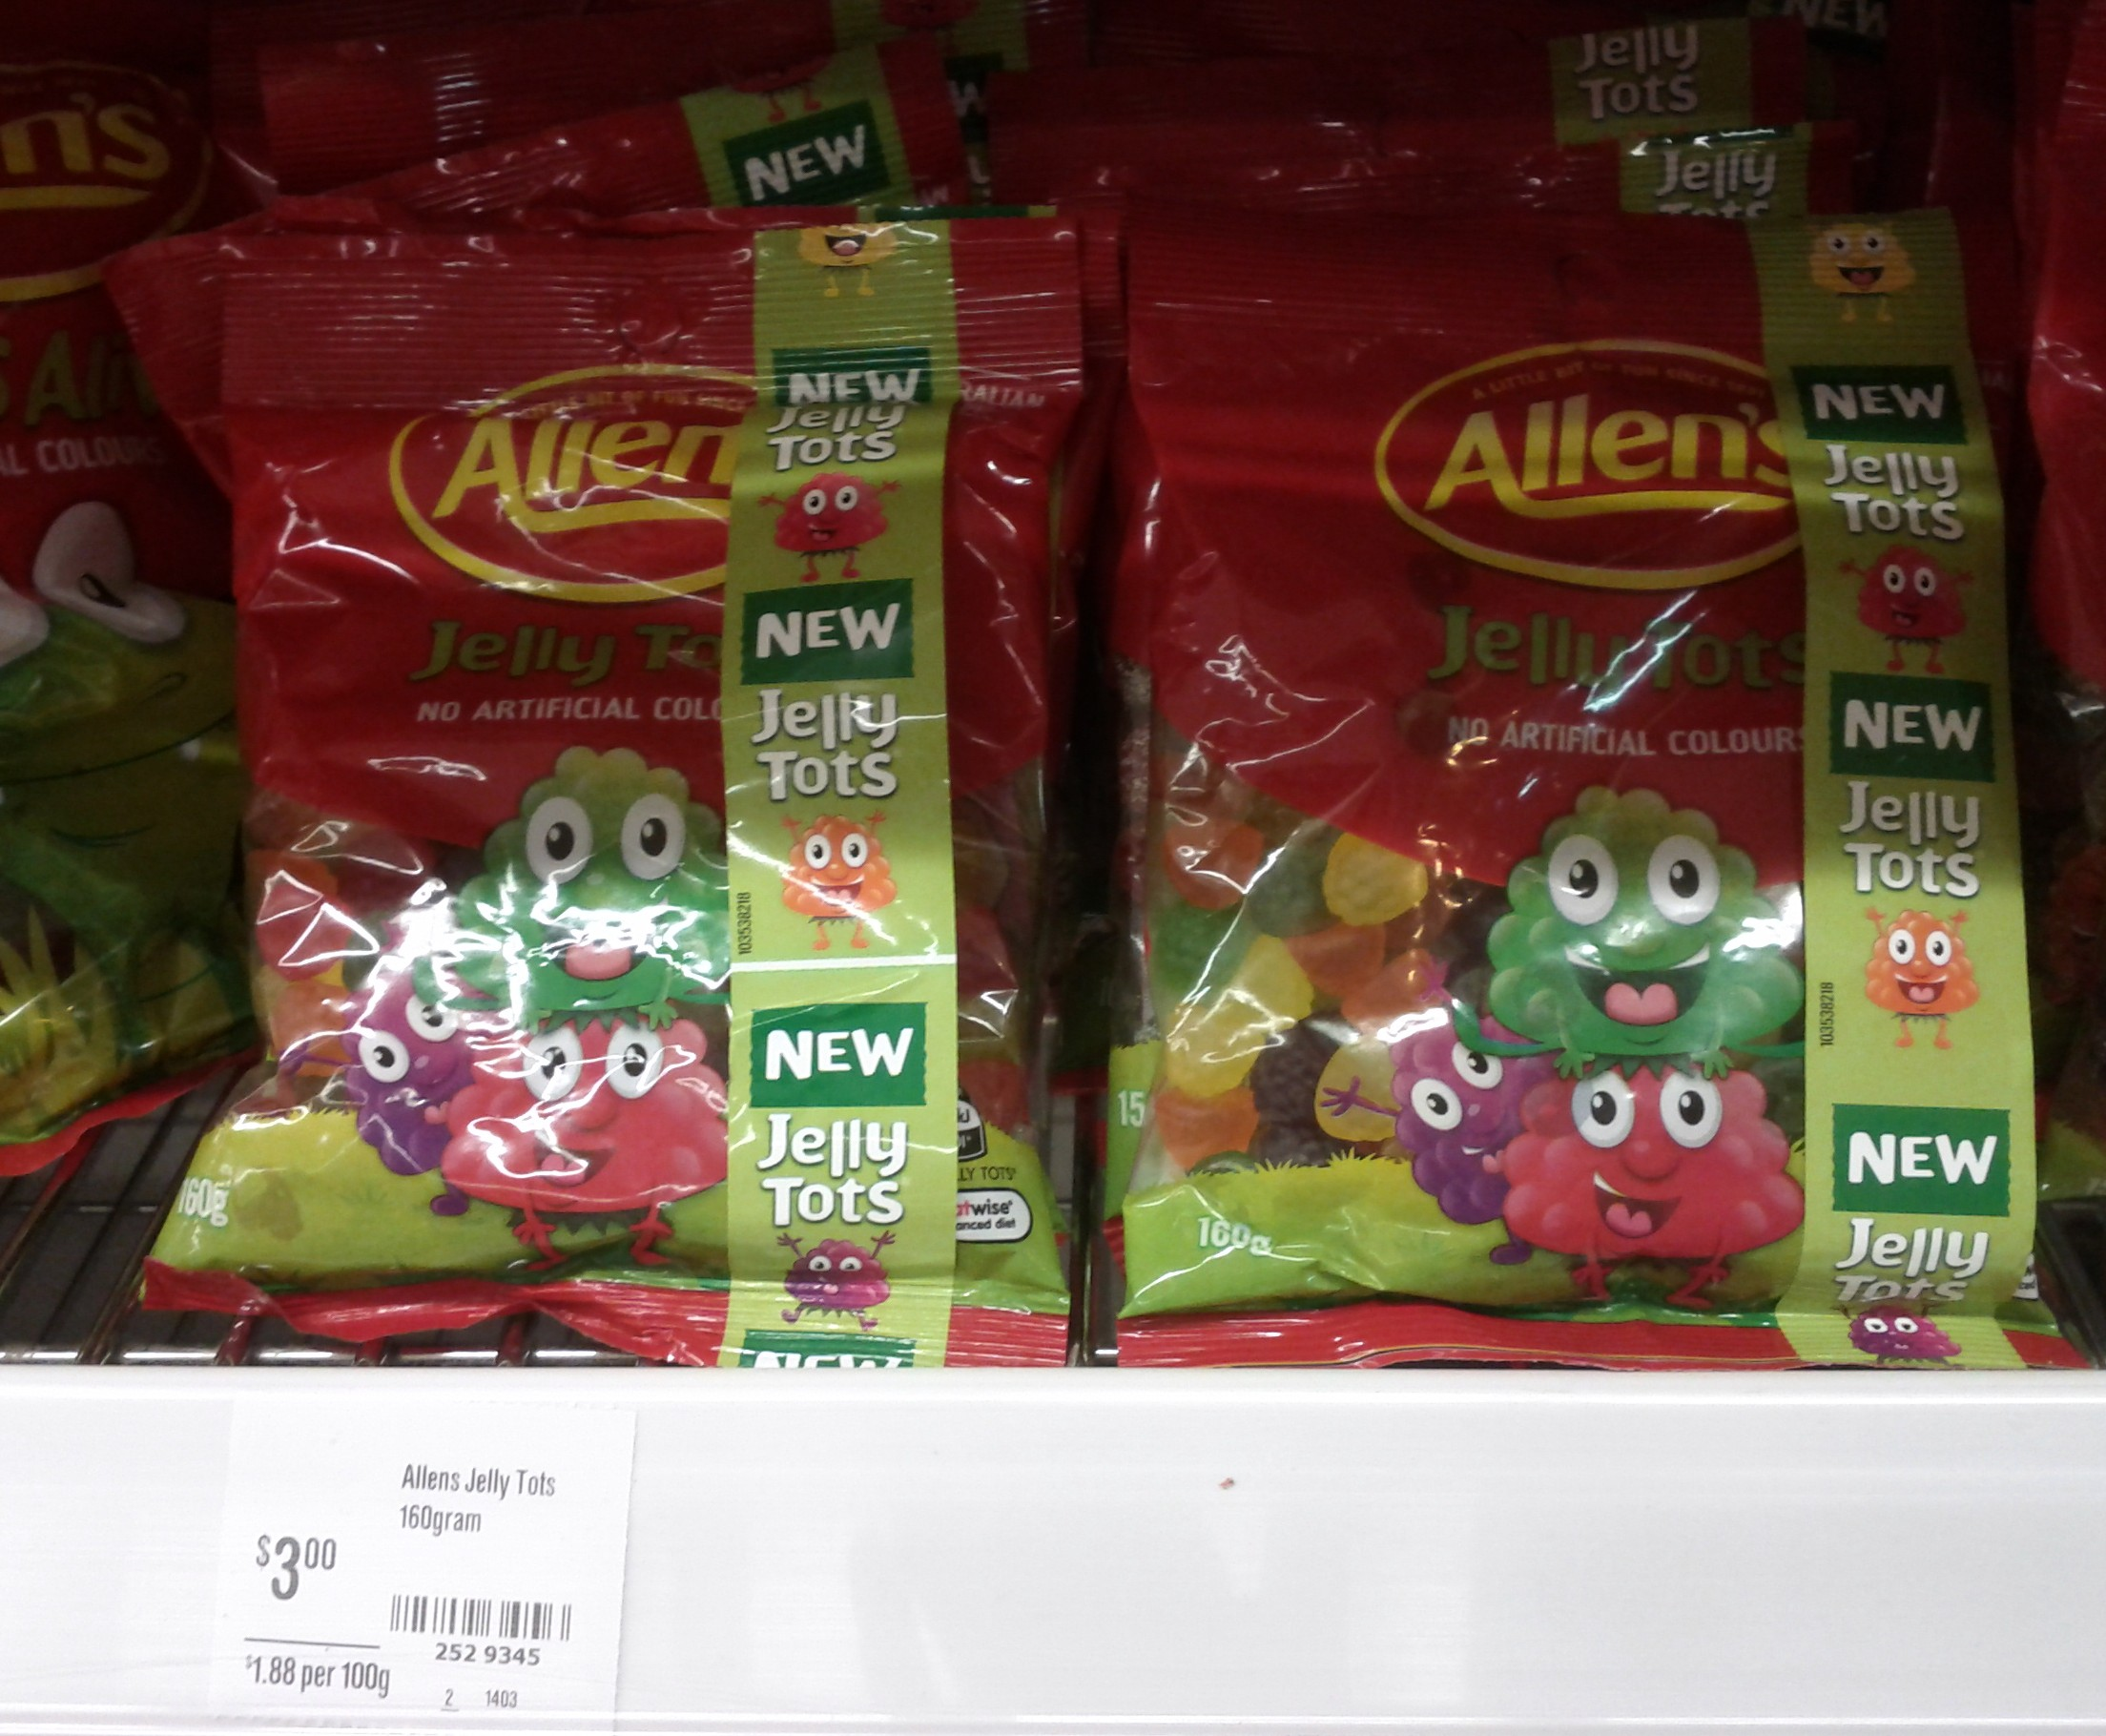 Allens 160g Jelly Tots